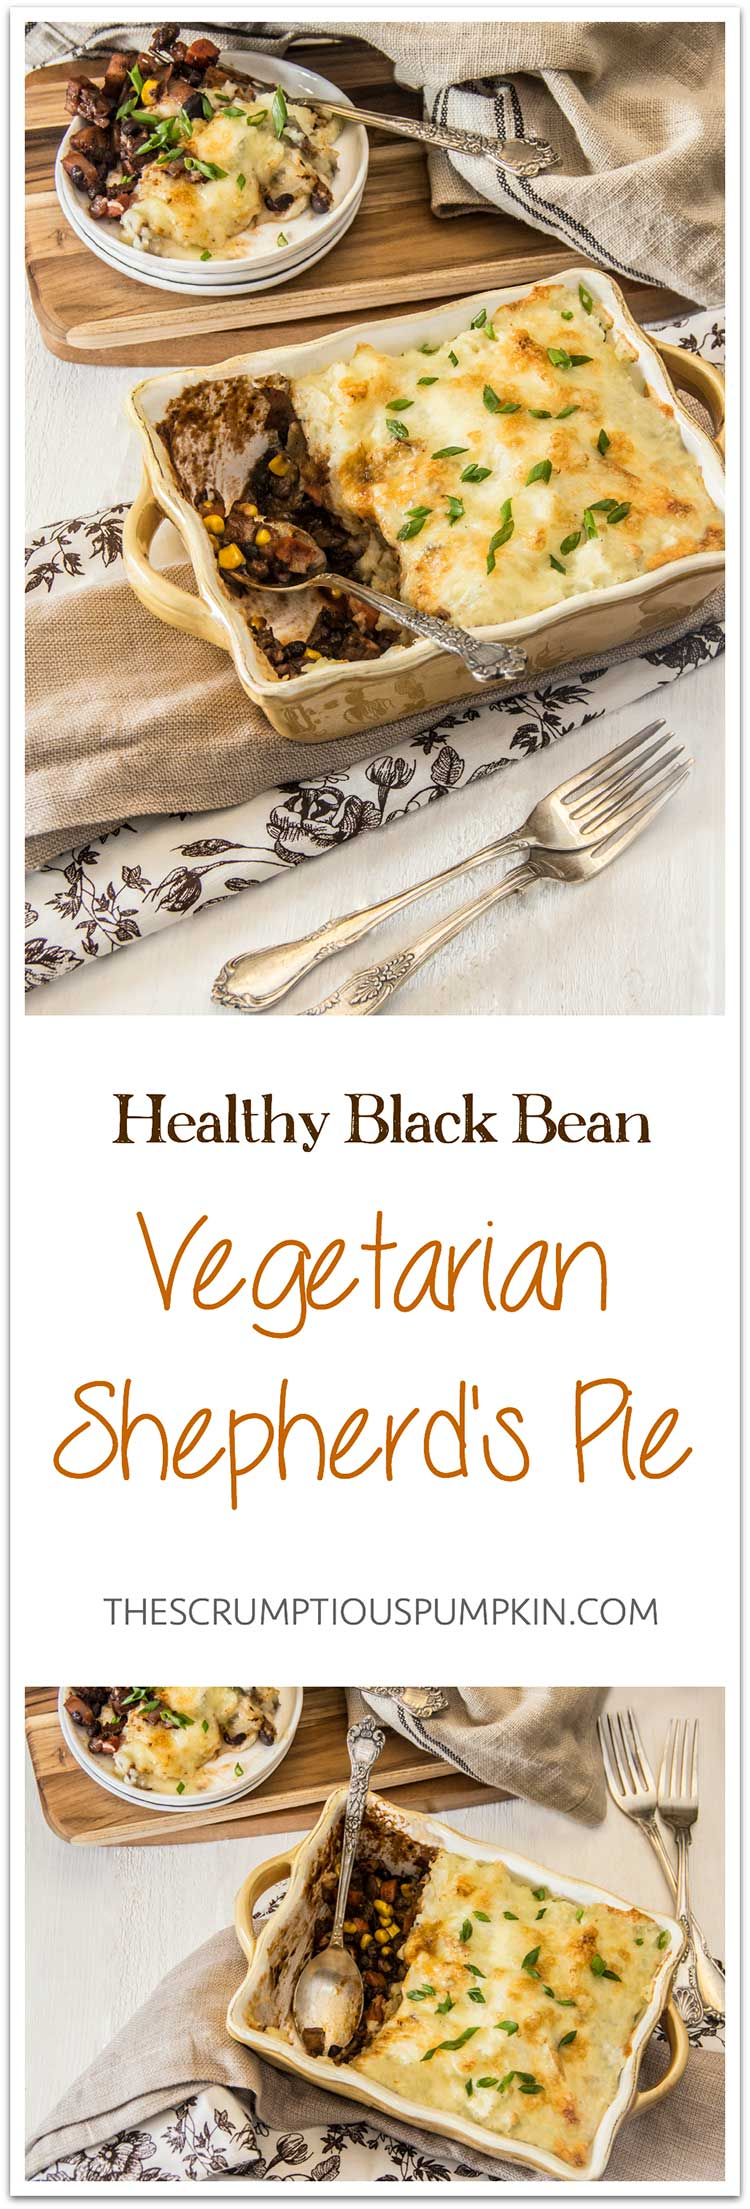 Healthy-Black-Bean-Vegetarian-Shepherds-Pie